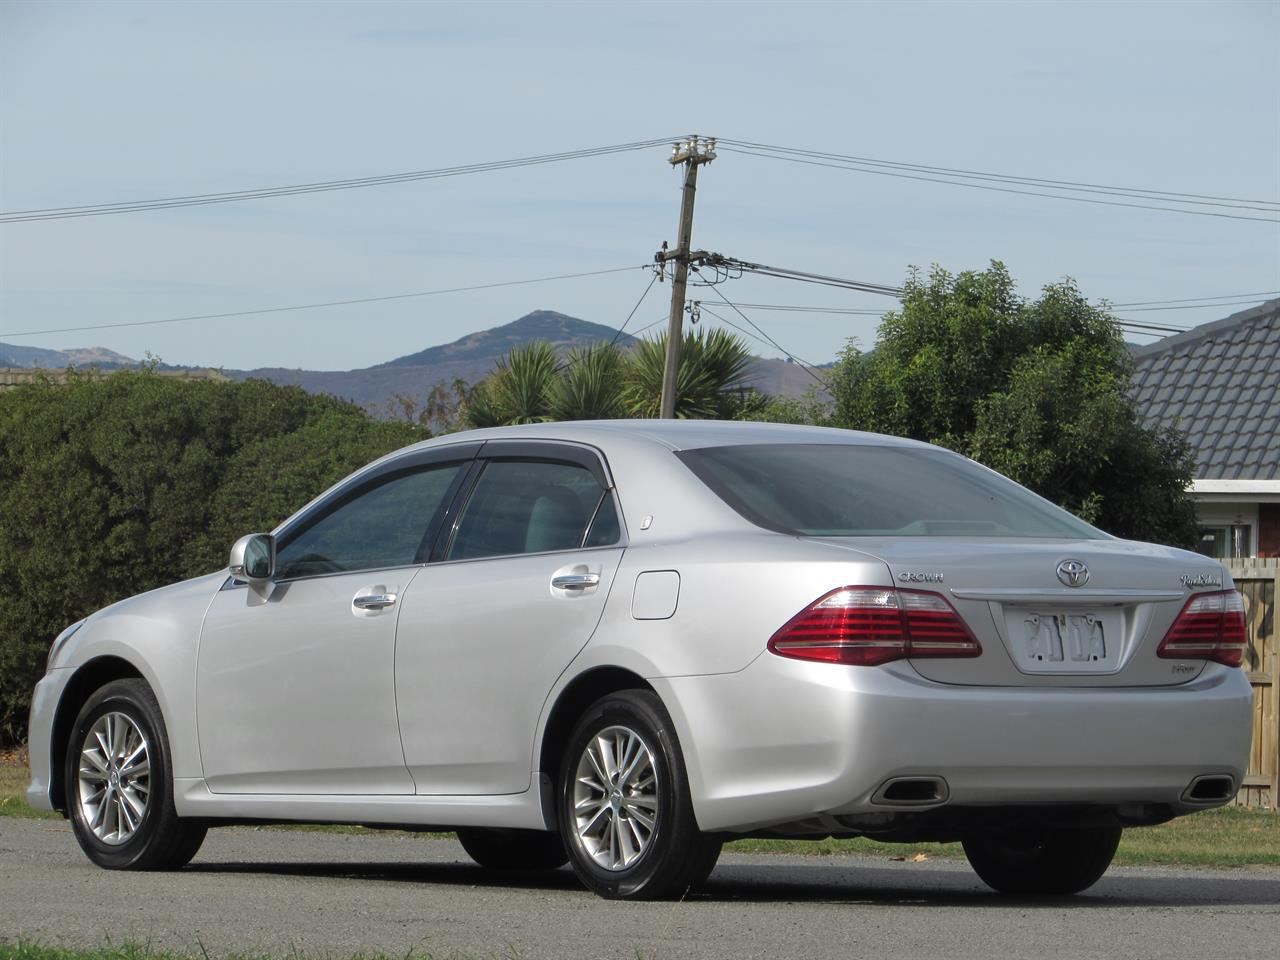 image-2, 2011 Toyota Crown at Christchurch